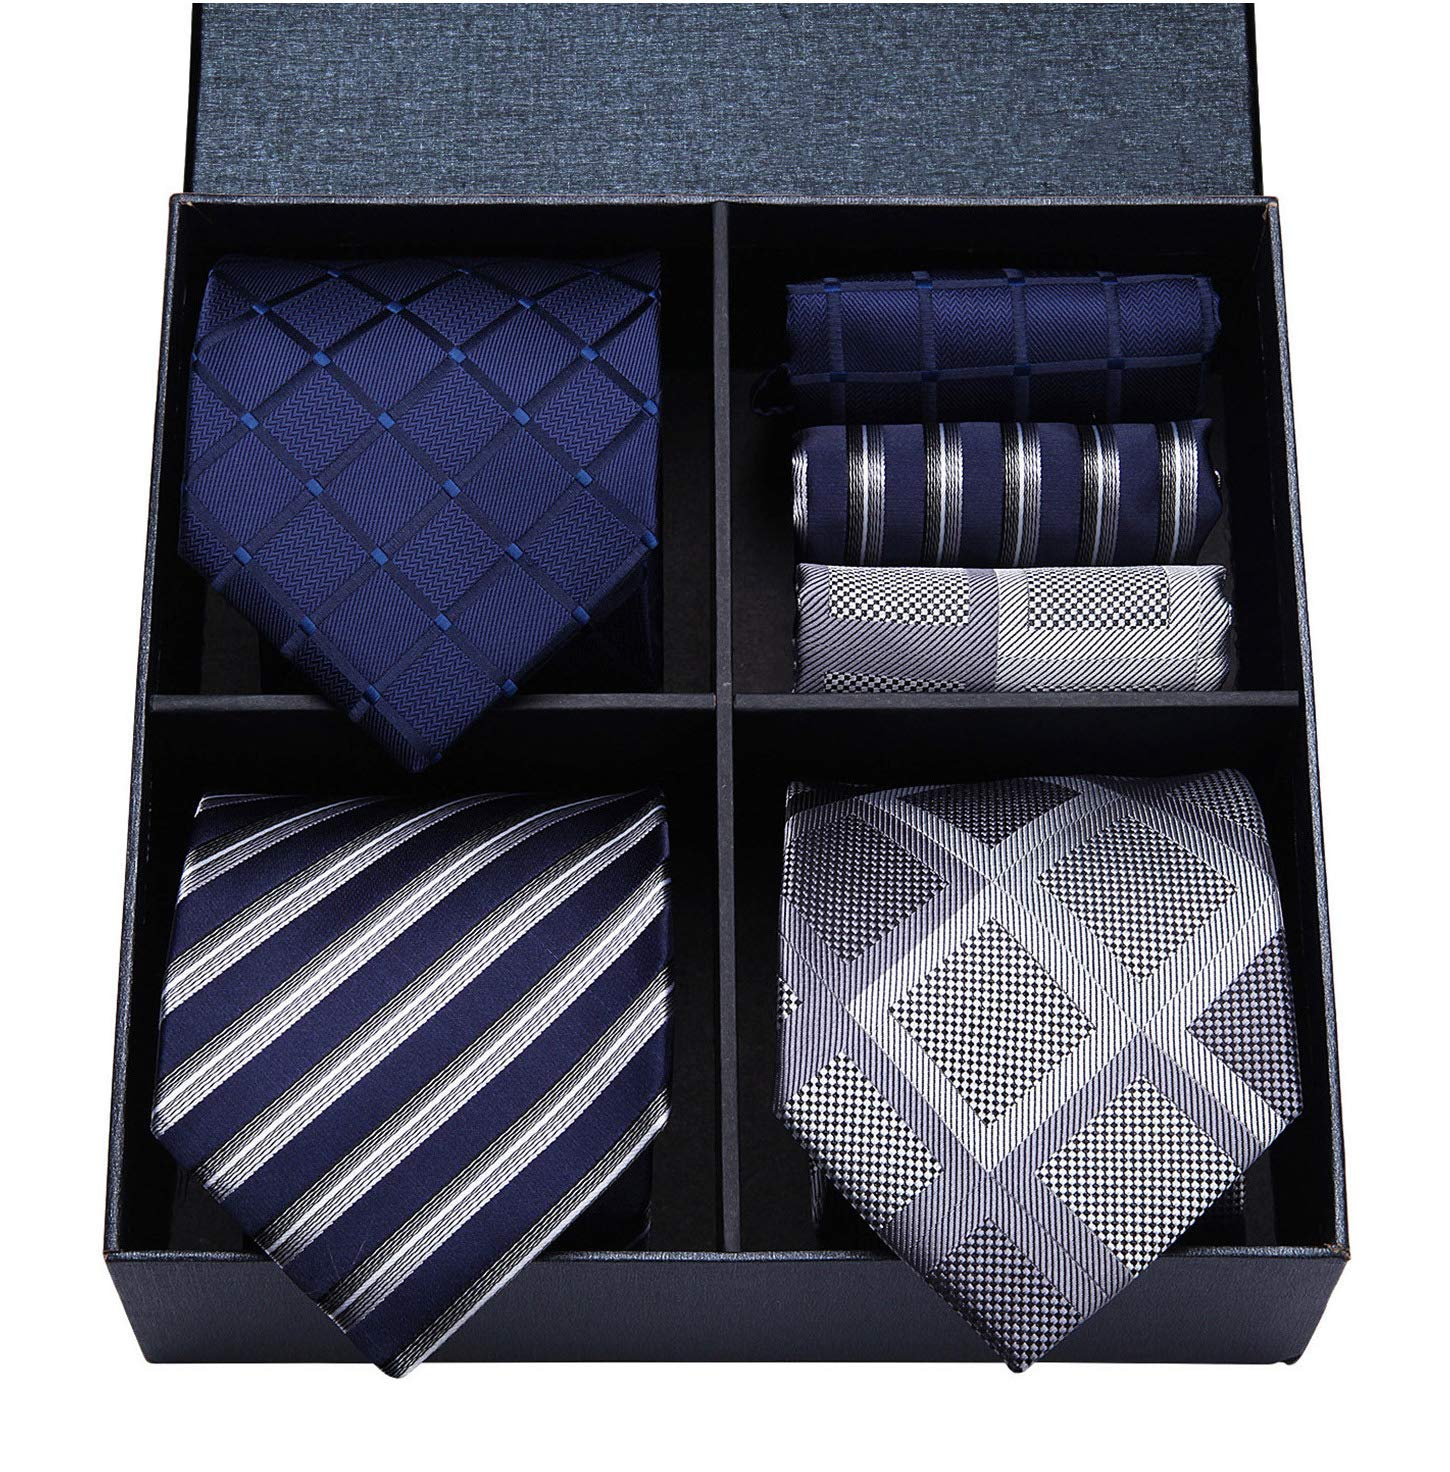 HISDERN Lot 3 PCS Classic Men's Tie Set Necktie & Pocket Square Elegant Neck Ties Collection,T3-10,One Size by HISDERN